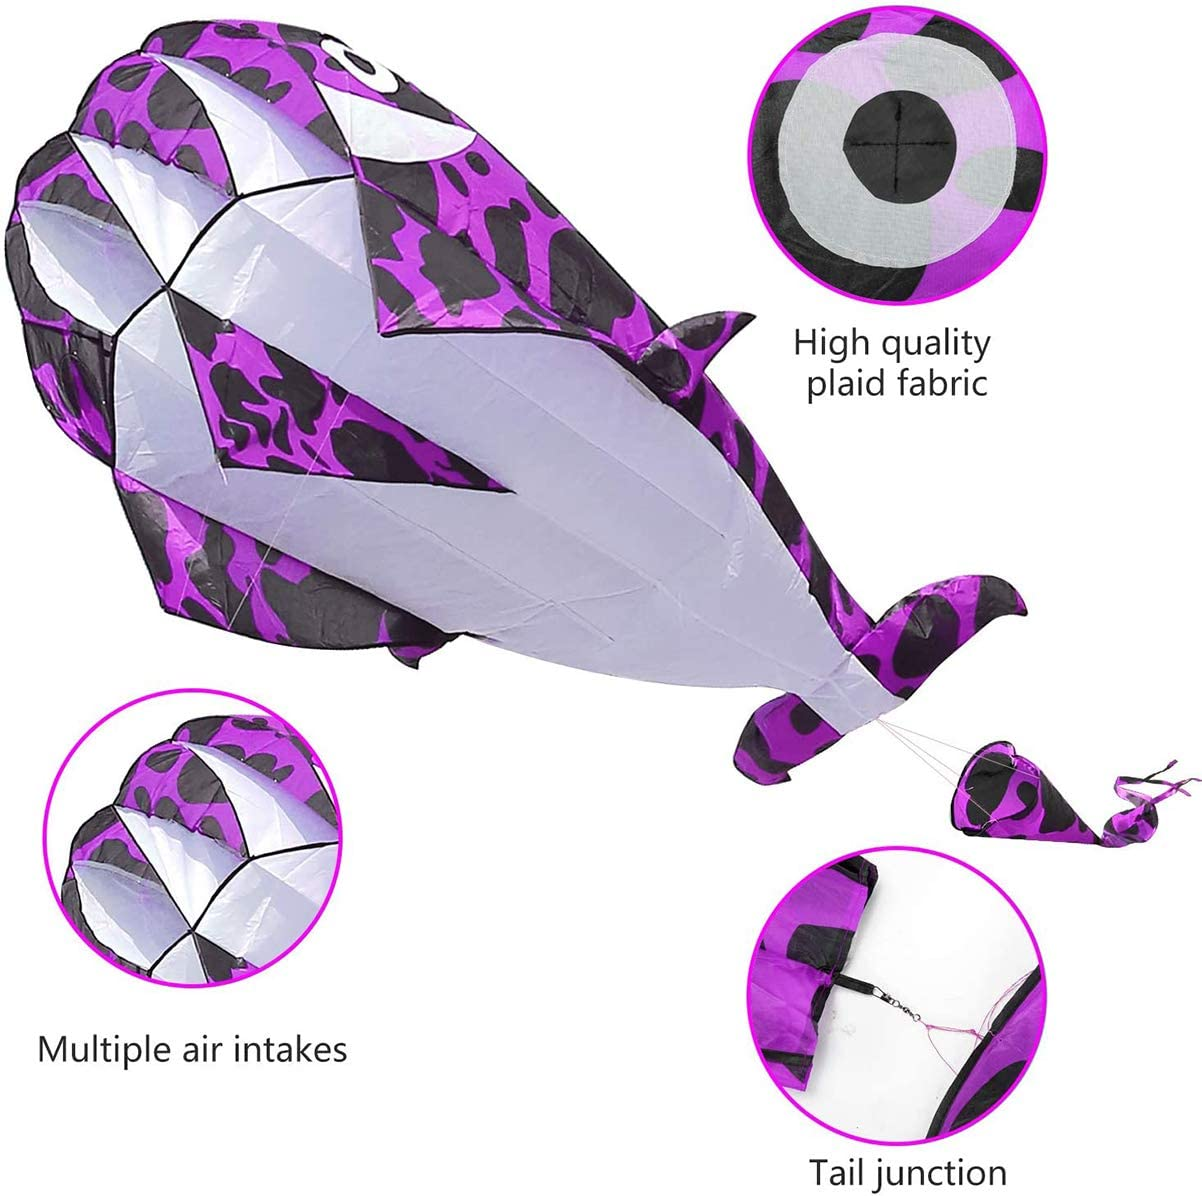 MAYY Lamonty 2 Pack Kites Large 3D Purple Spoted Dolphin Kite and Green Octopus for Children and Adult with Long Colorful Tail String Line Accessories Easy to Soar High Outdoor Sports